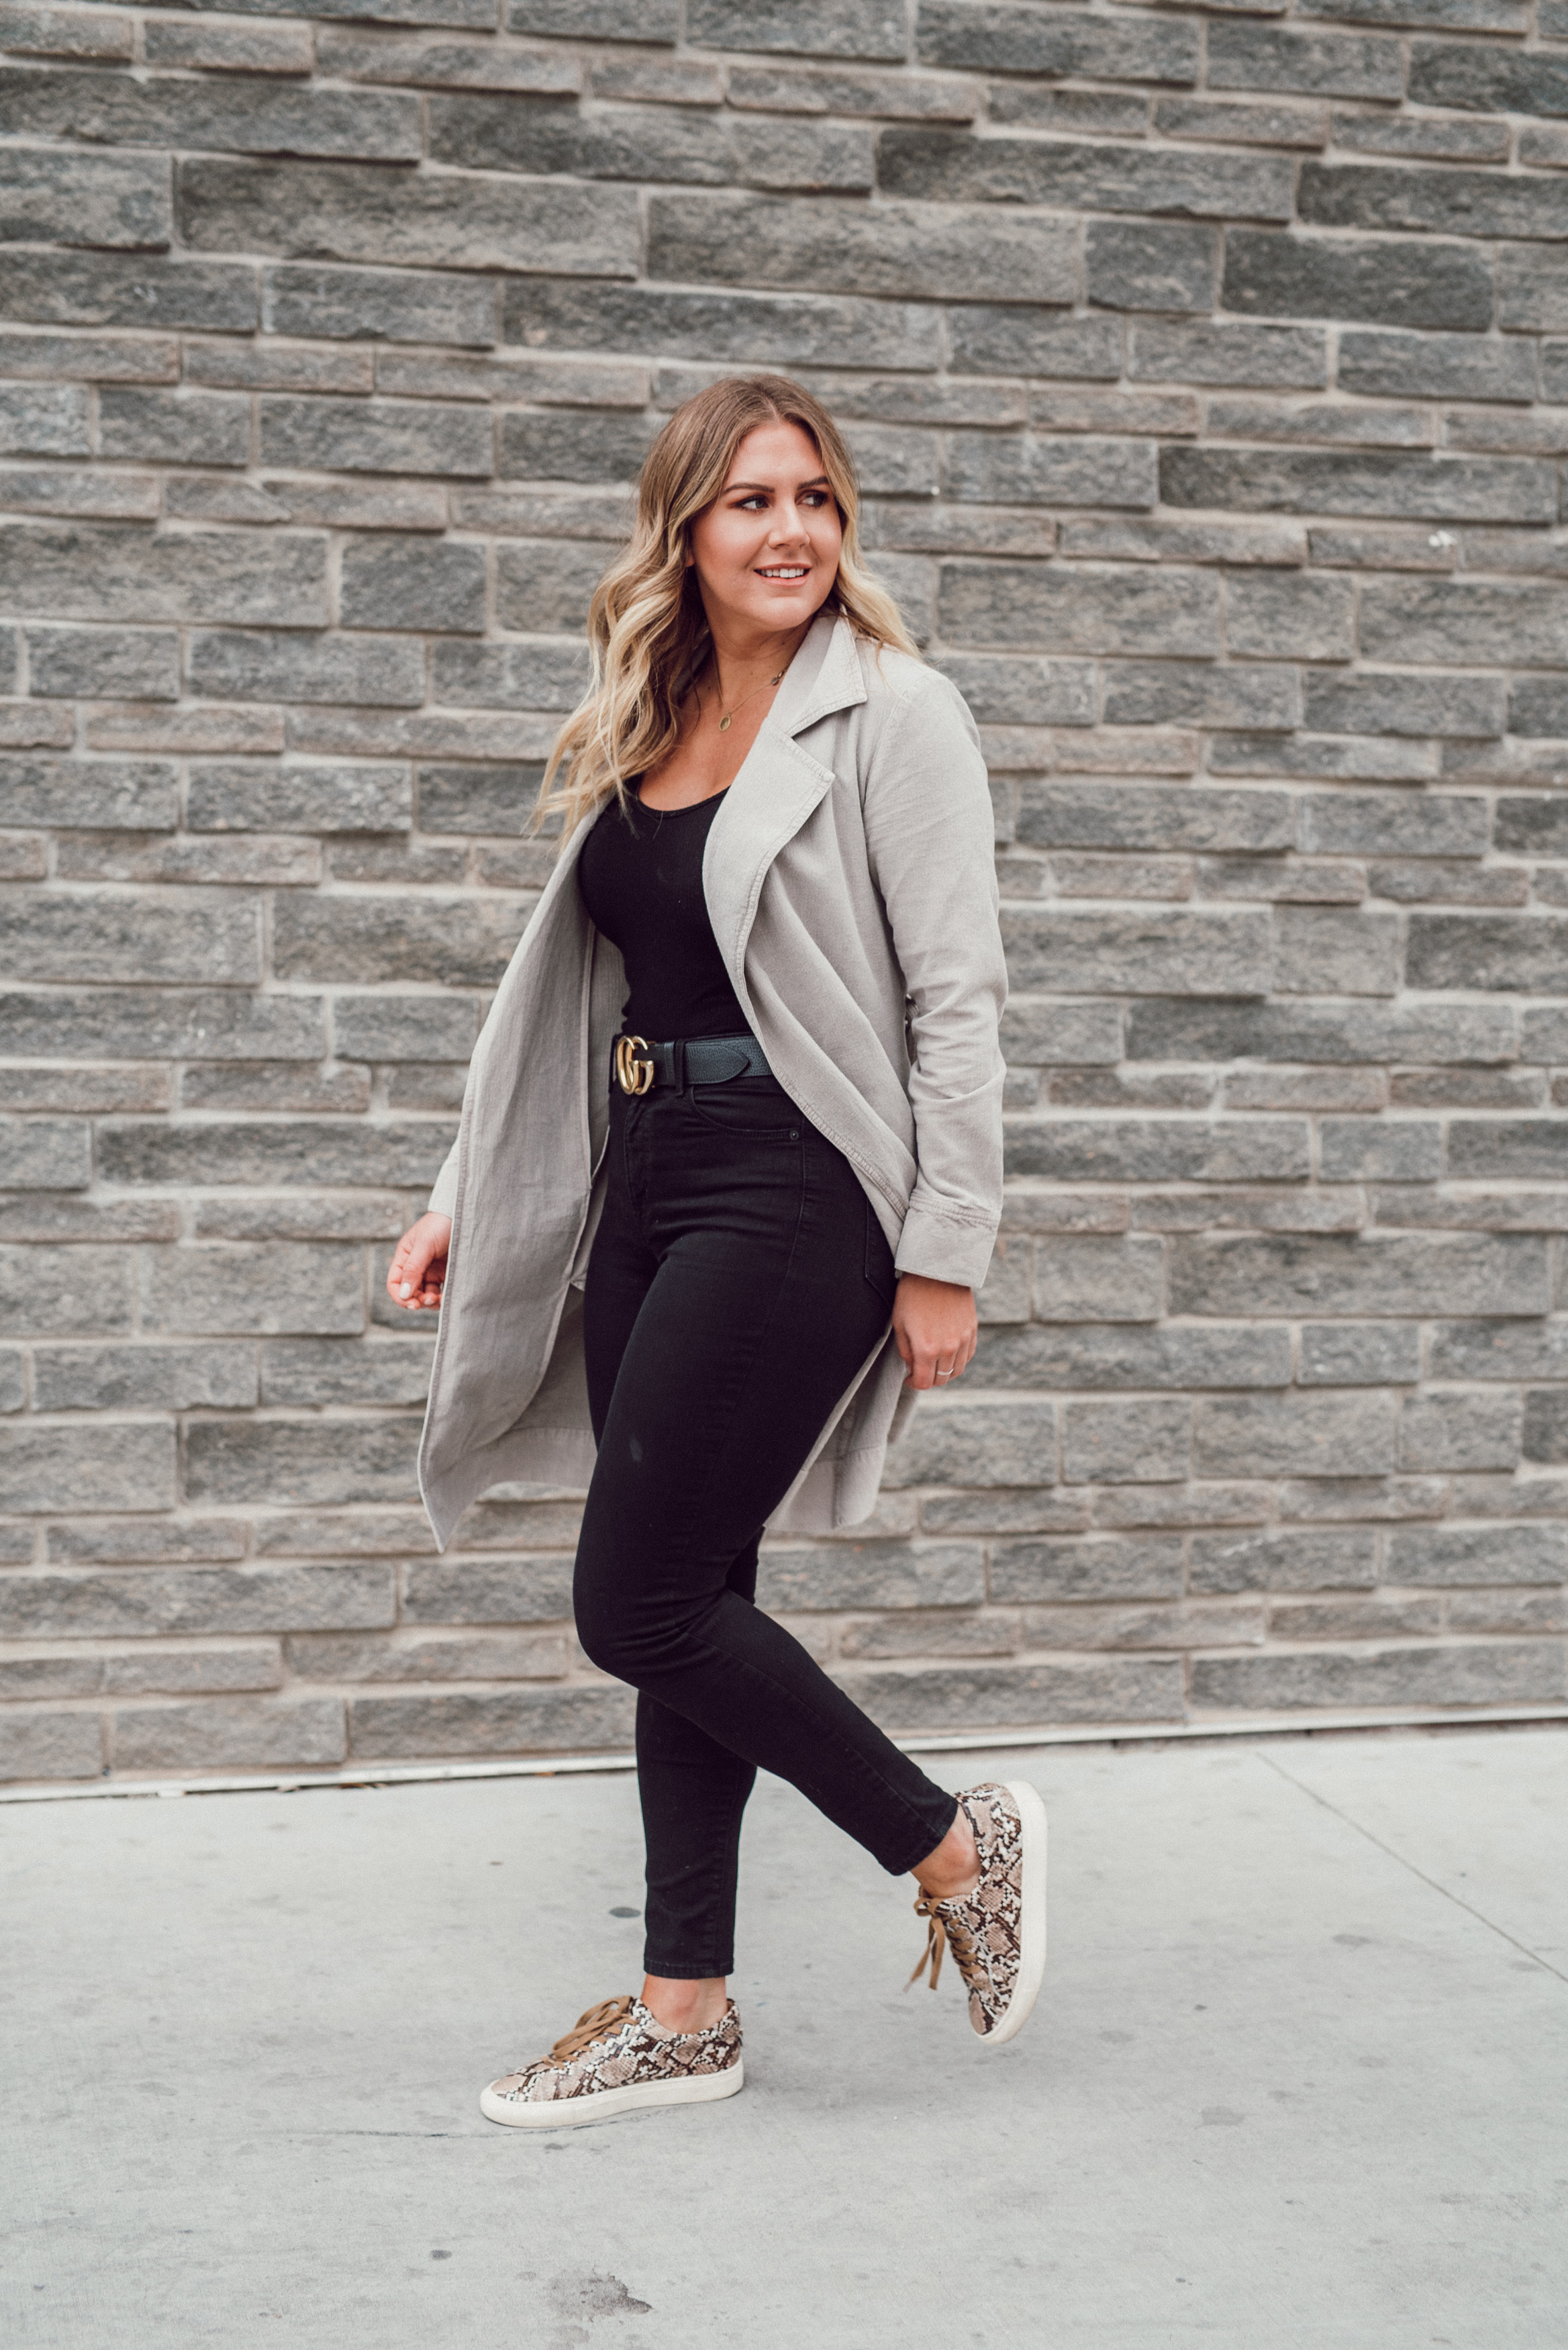 Chic & Comfy Work Style